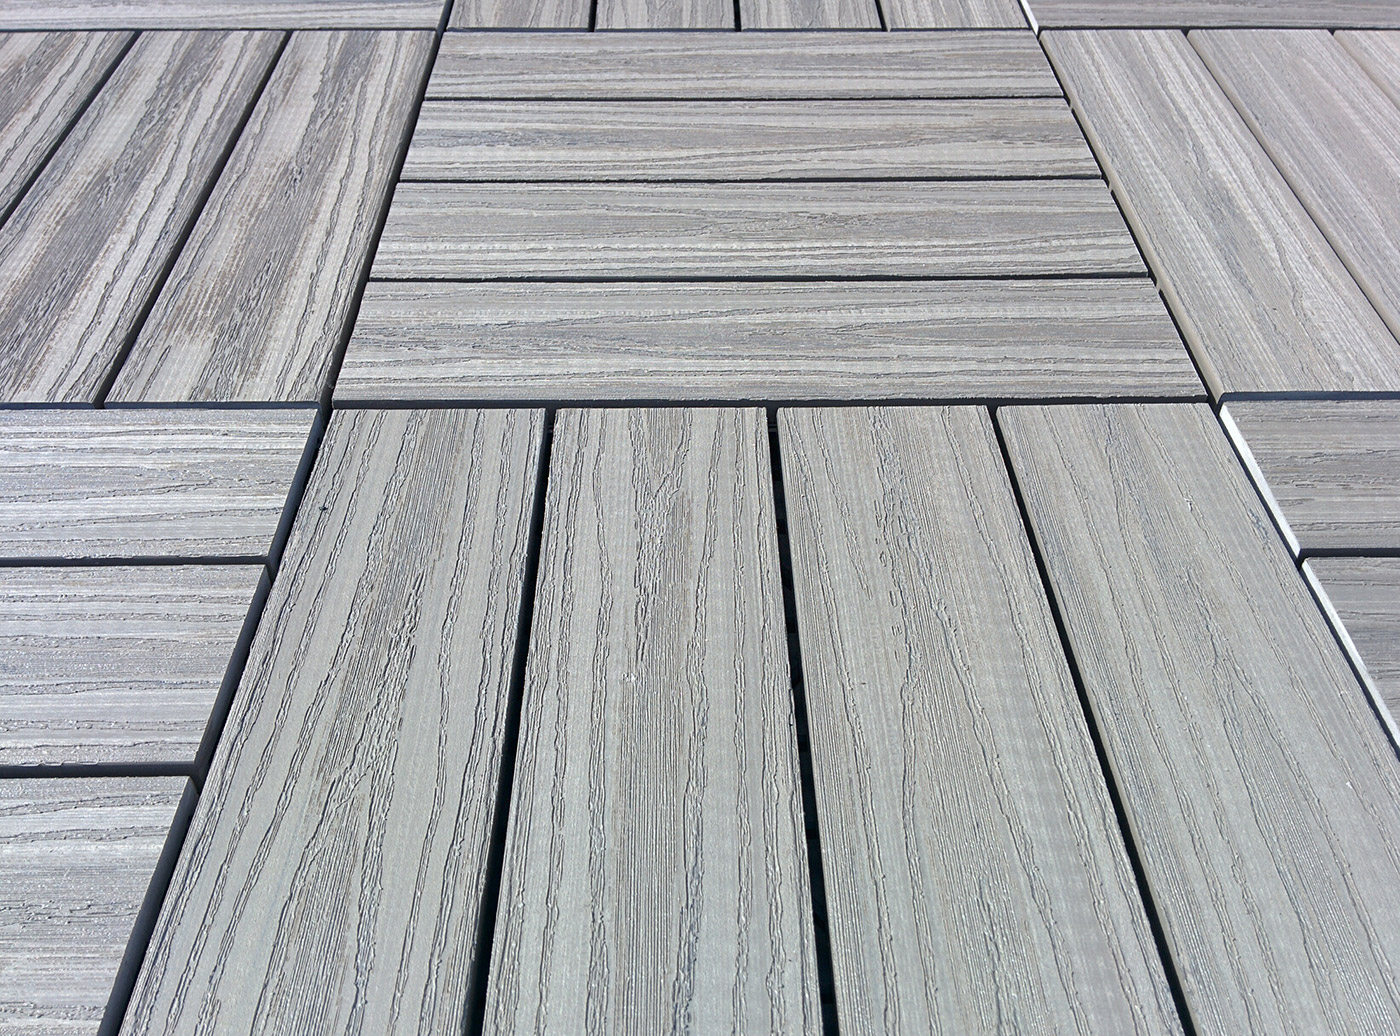 Interlocking Deck Tiles Patio Flooring Tiles Bc